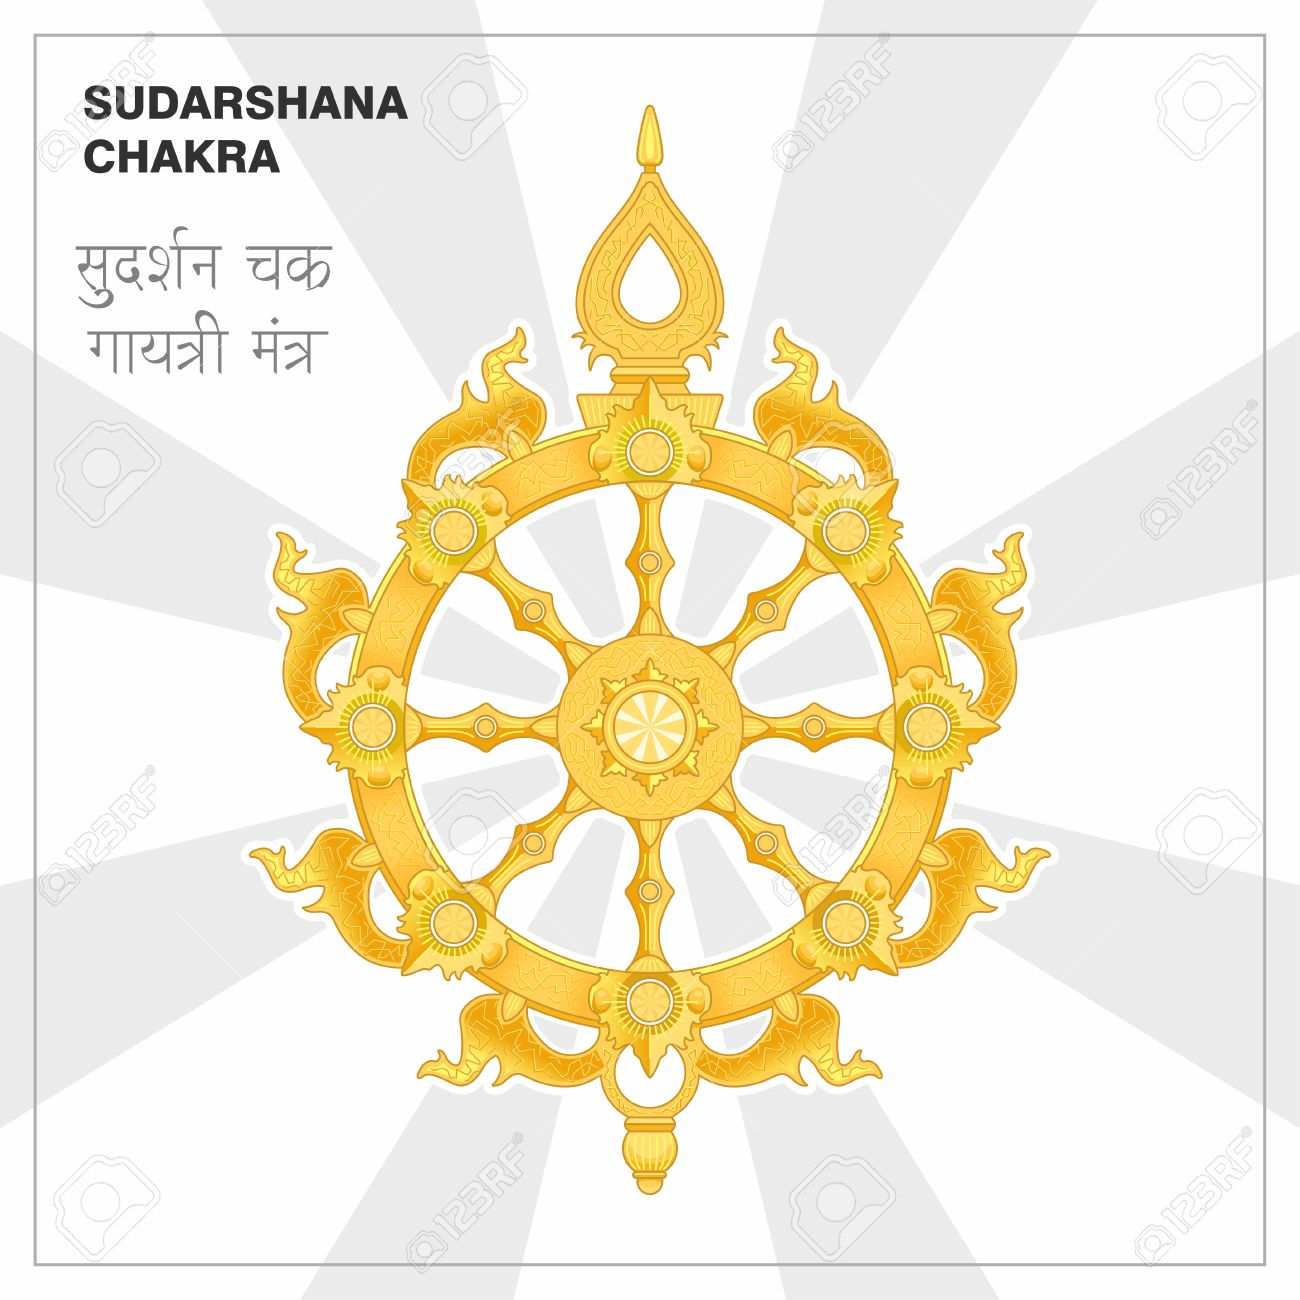 Sudarshana chakra fiery disc attribute weapon of lord krishna sudarshana chakra fiery disc attribute weapon of lord krishna a religious symbol buycottarizona